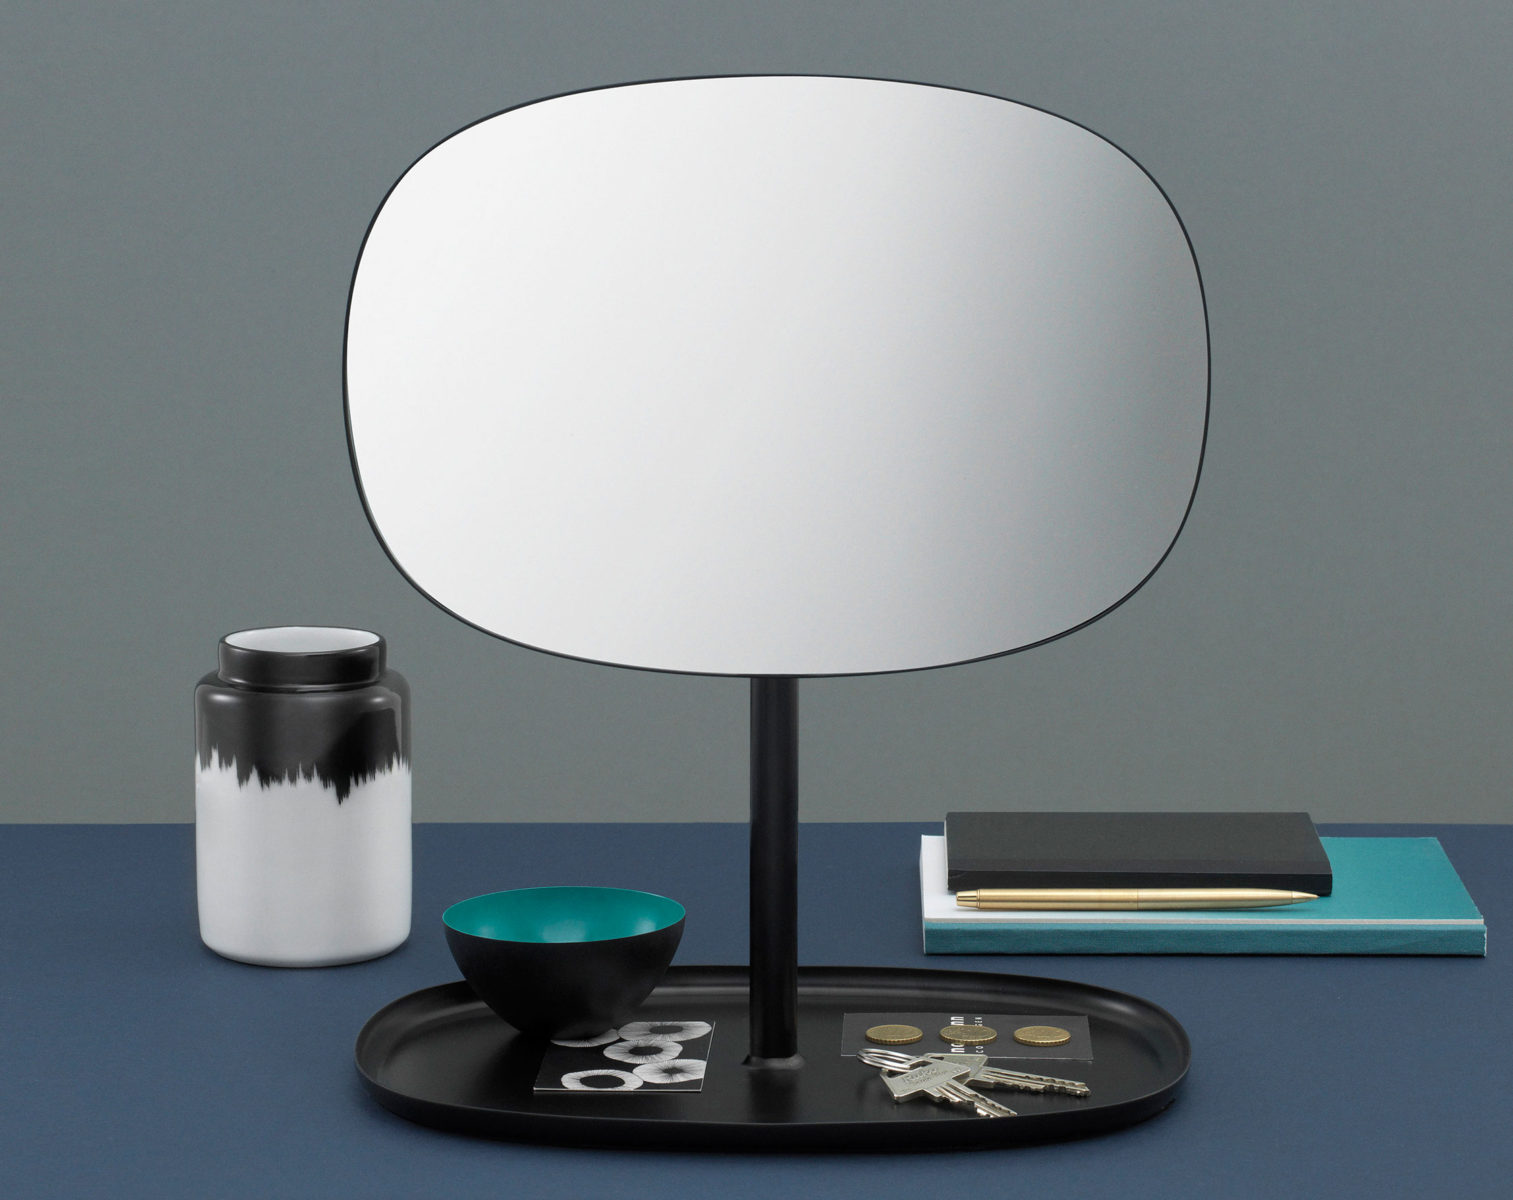 Flip Mirror designed for Normann Copenhagen.